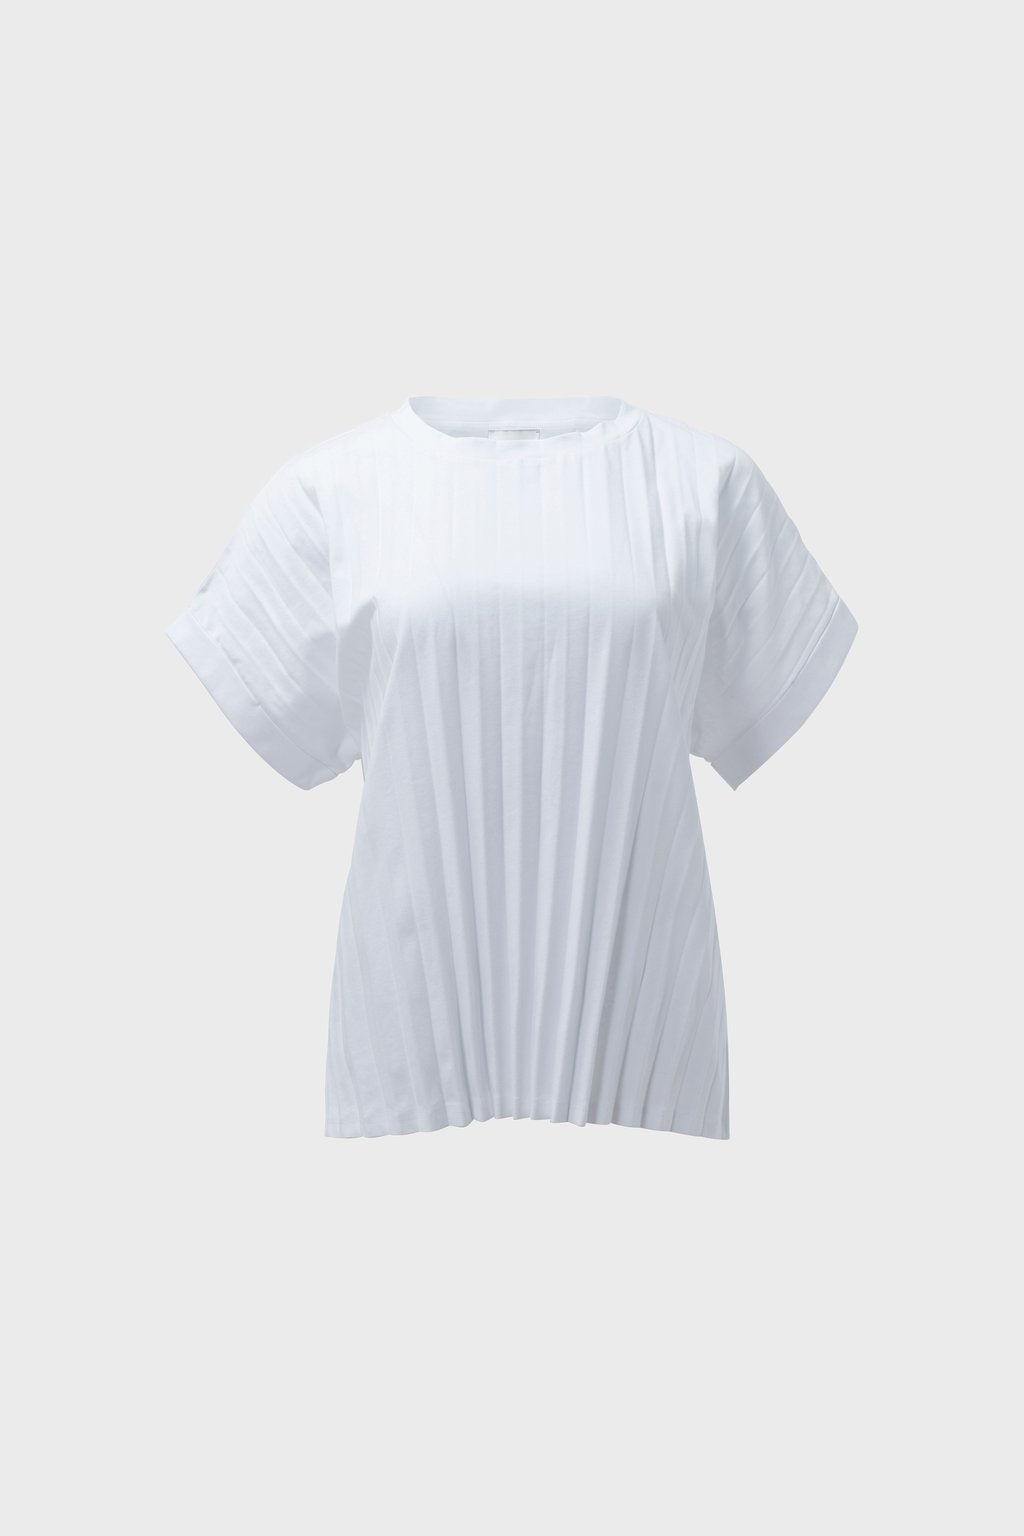 Vekki Top - White